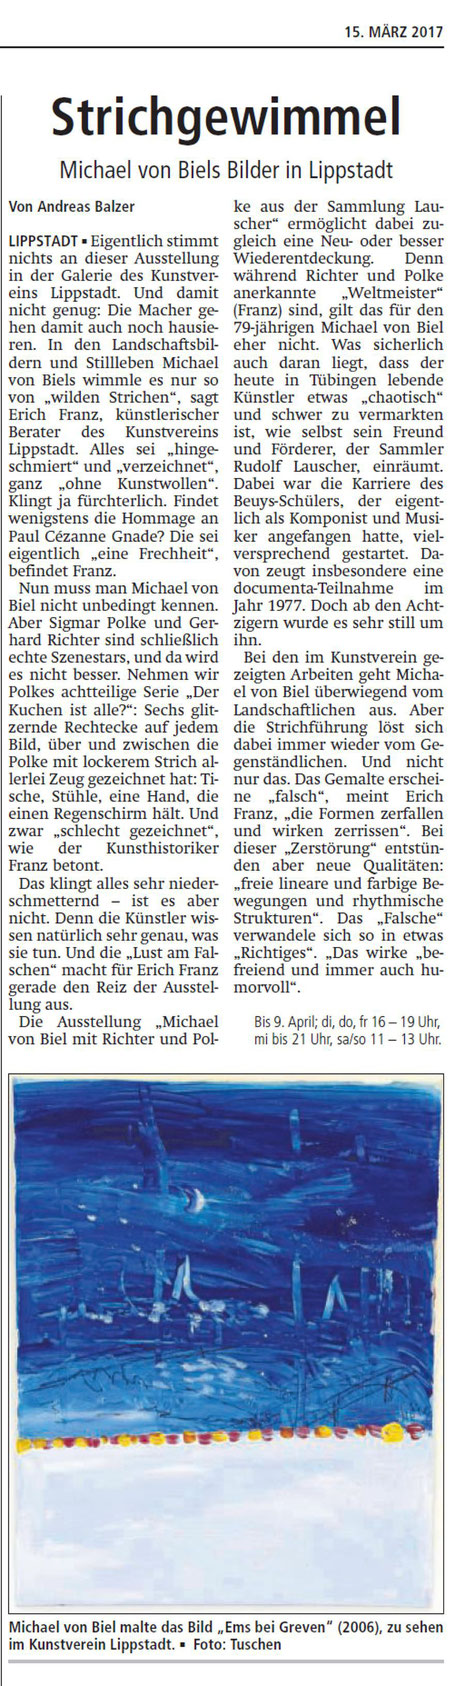 WA, Der Patriot, 15.03.2017